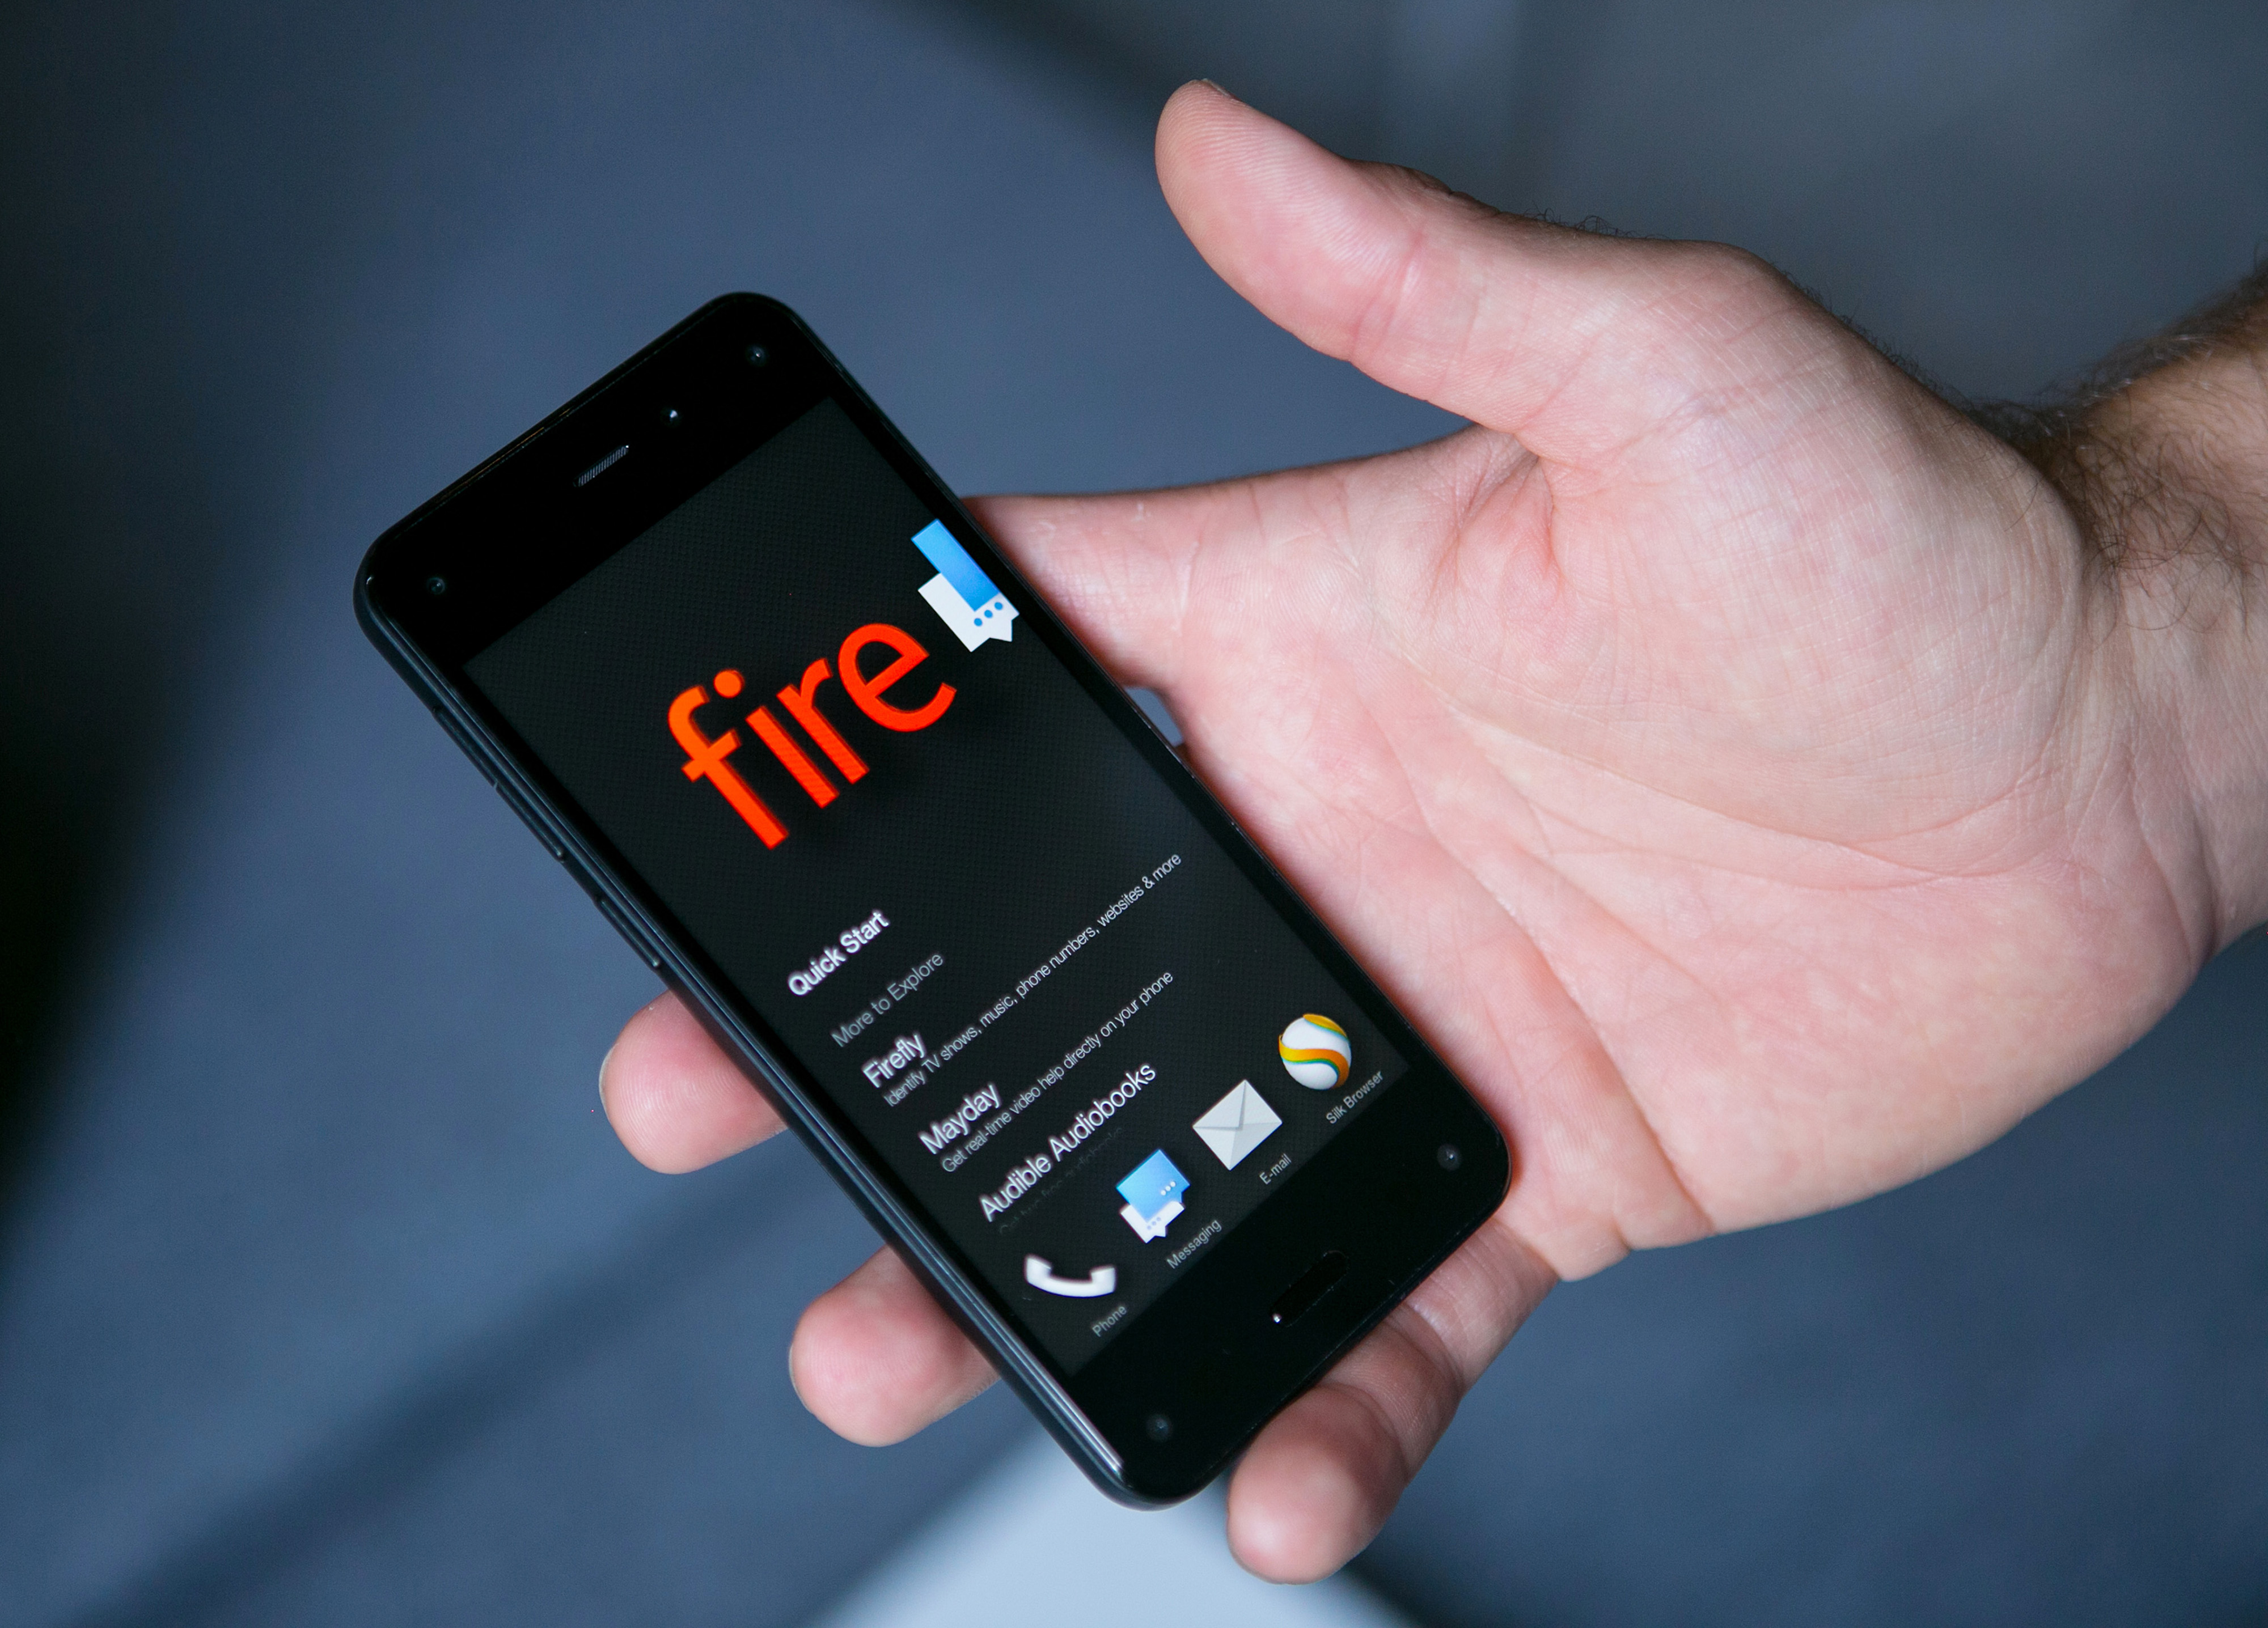 A man holds the new Fire smartphone by Amazon.com Inc. during demonstration at a a news conference in Berlin, Germany, on Monday, Sept. 8, 2014.